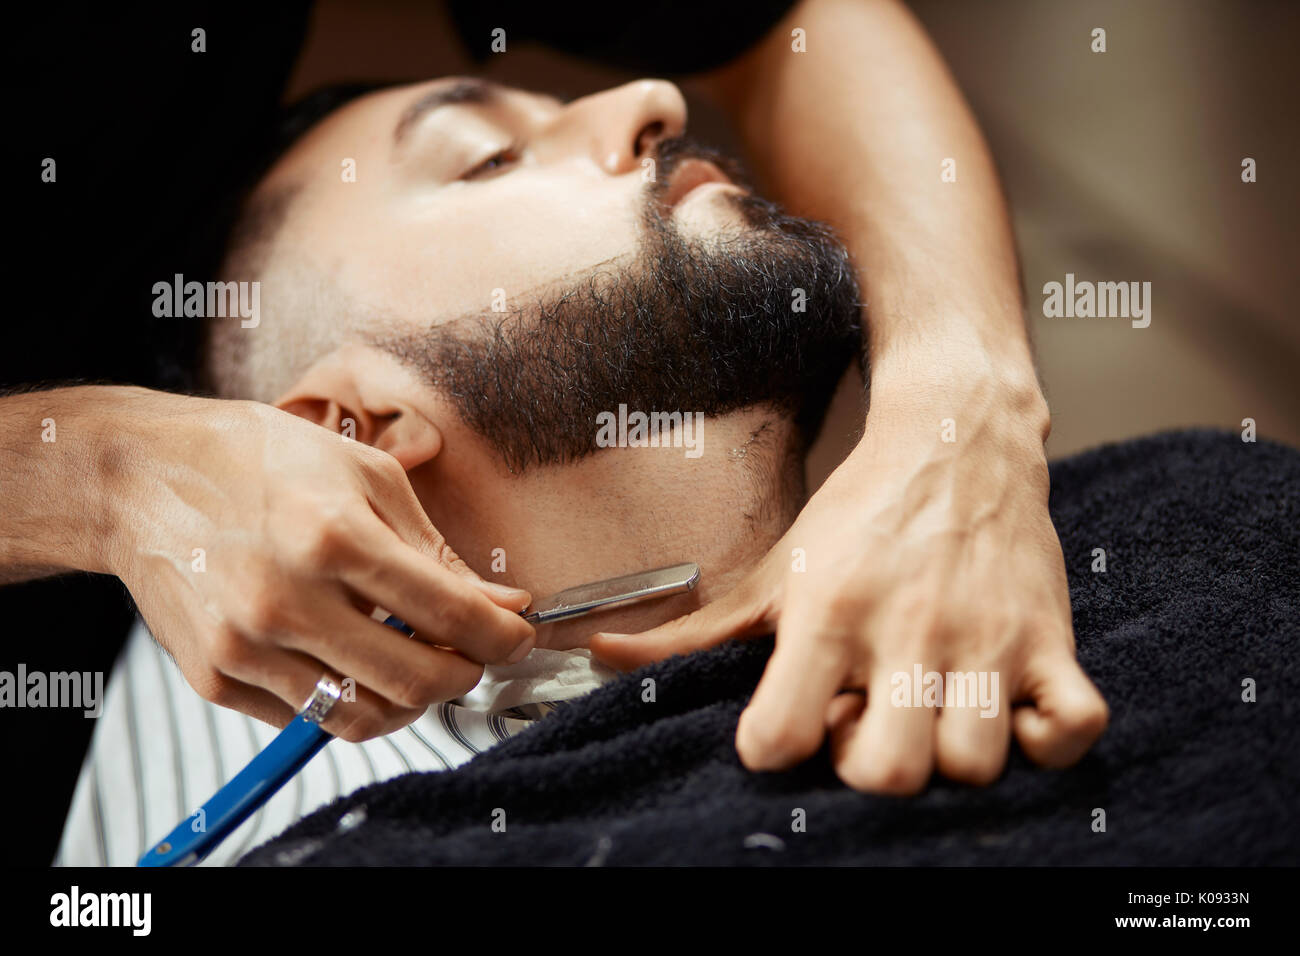 Anonymous man shaving client - Stock Image